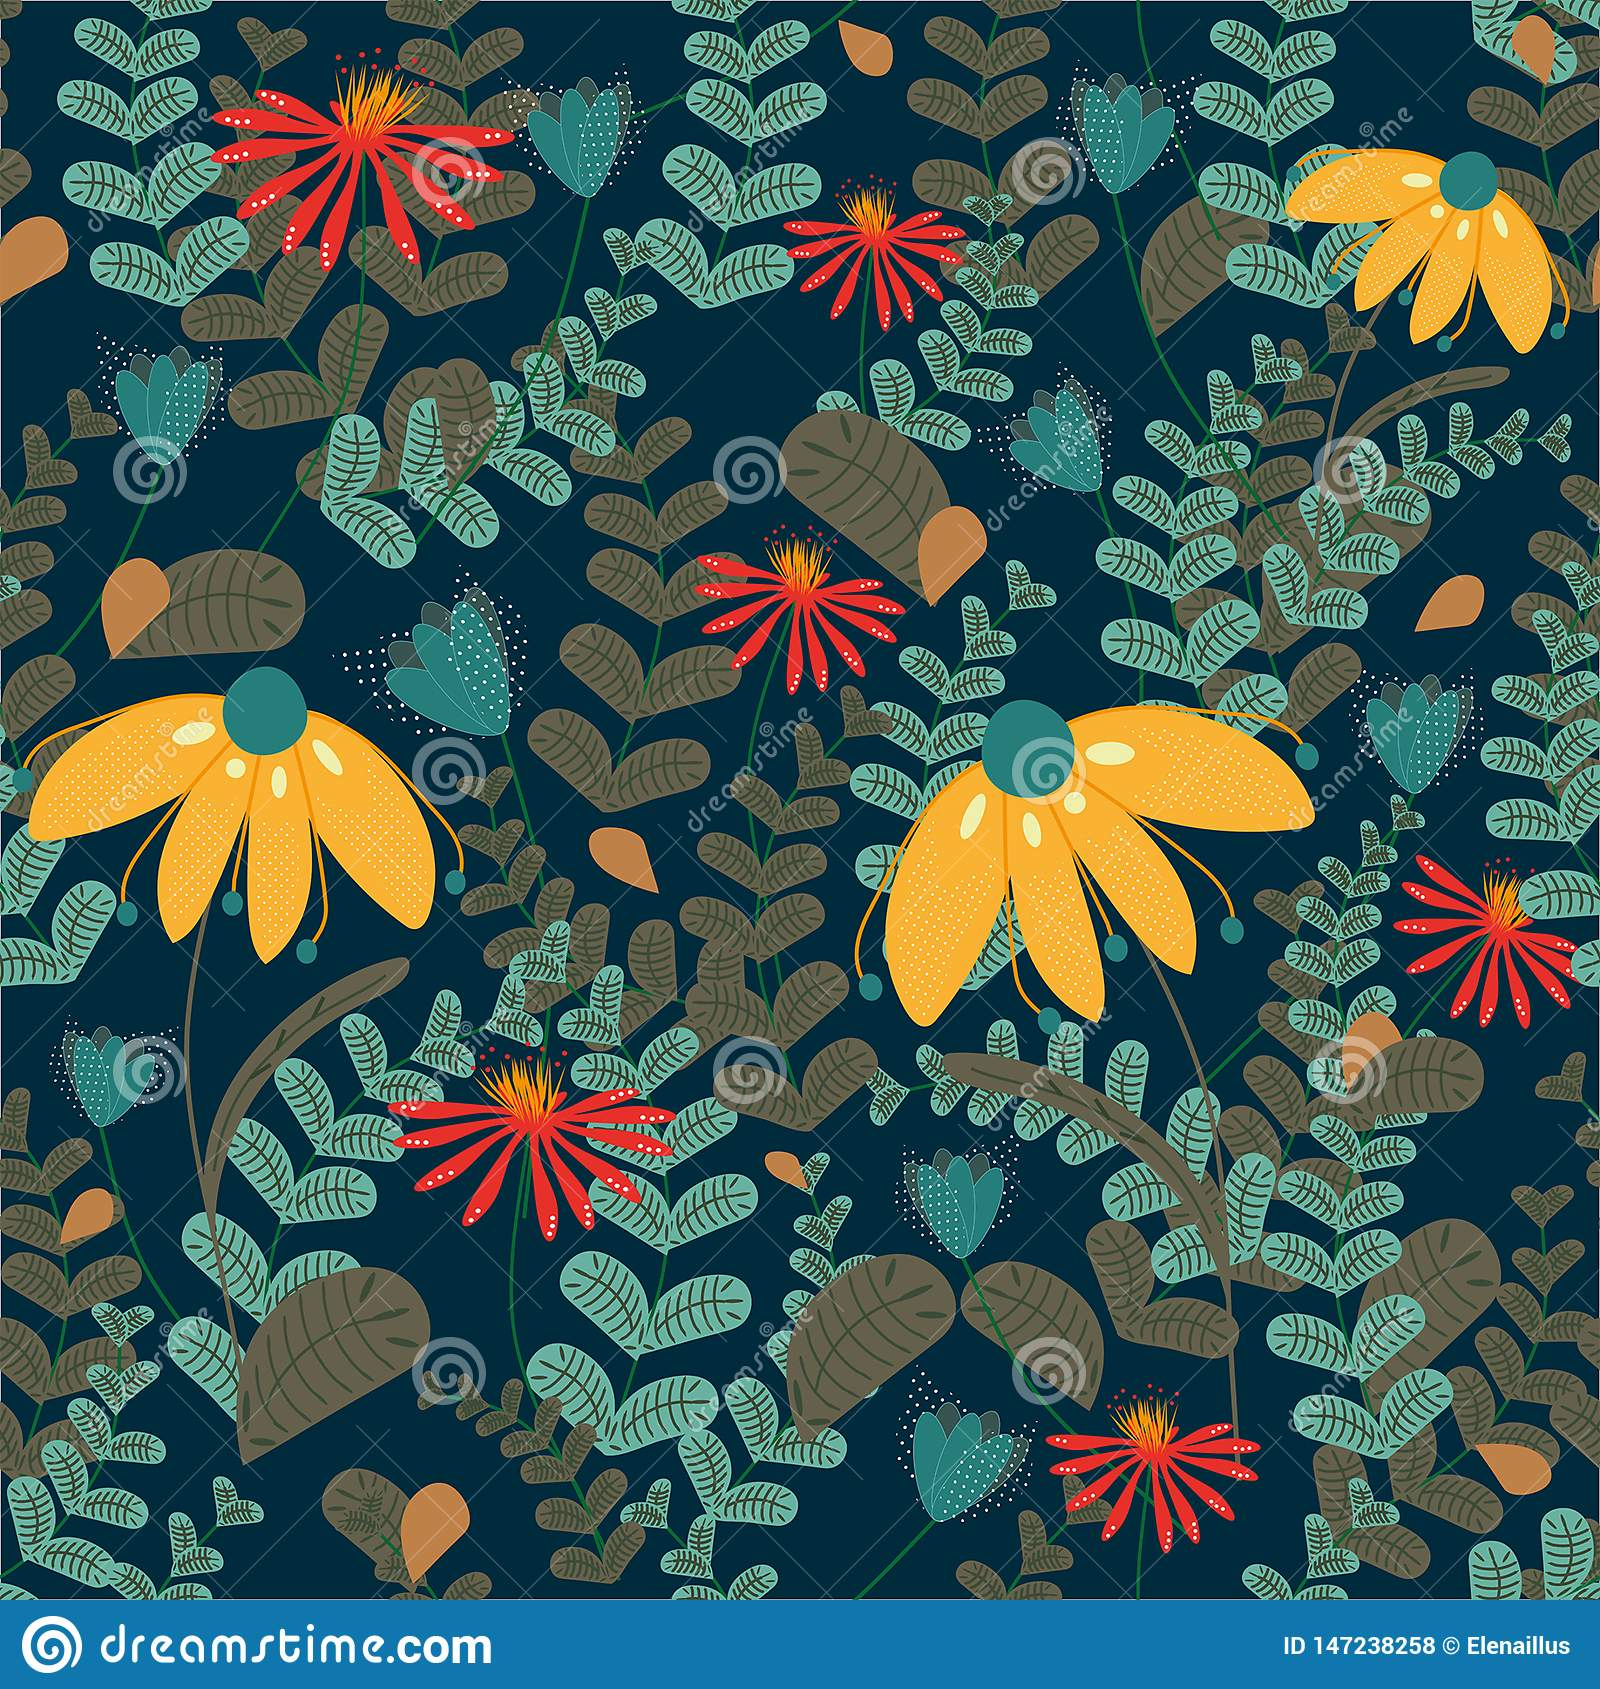 Vector seamless floral pattern on dark coloured background. Leaves and flowers pattern